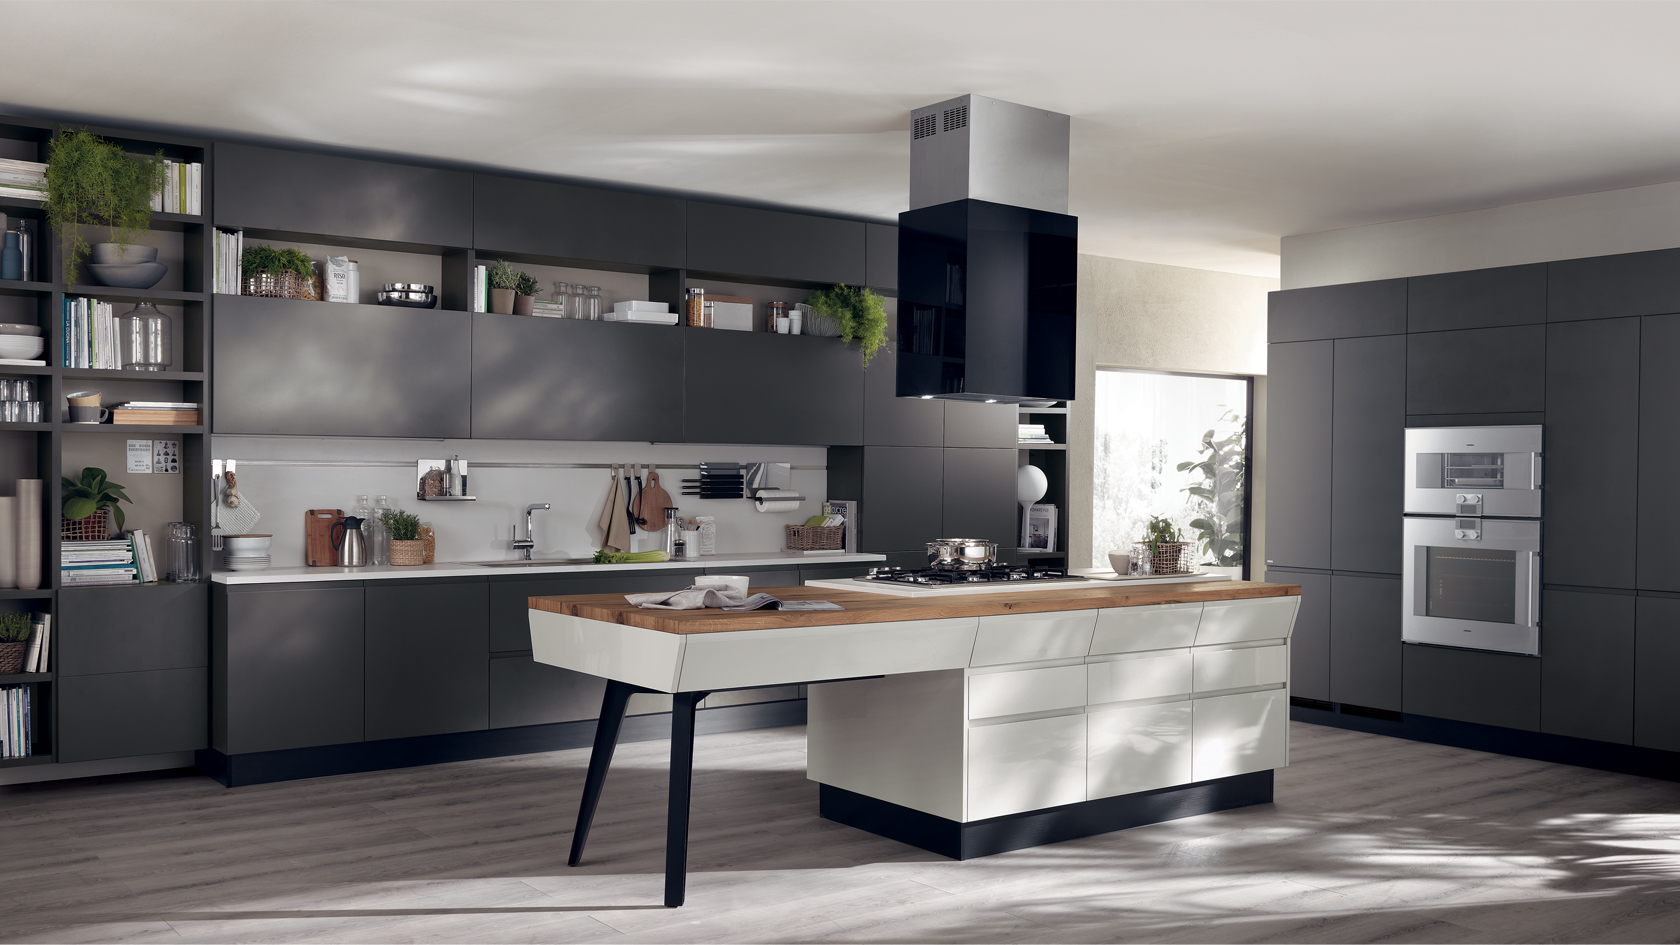 Scavolini Kitchen Designs Llc Dubai - Kitchen Appliances Tips And Review